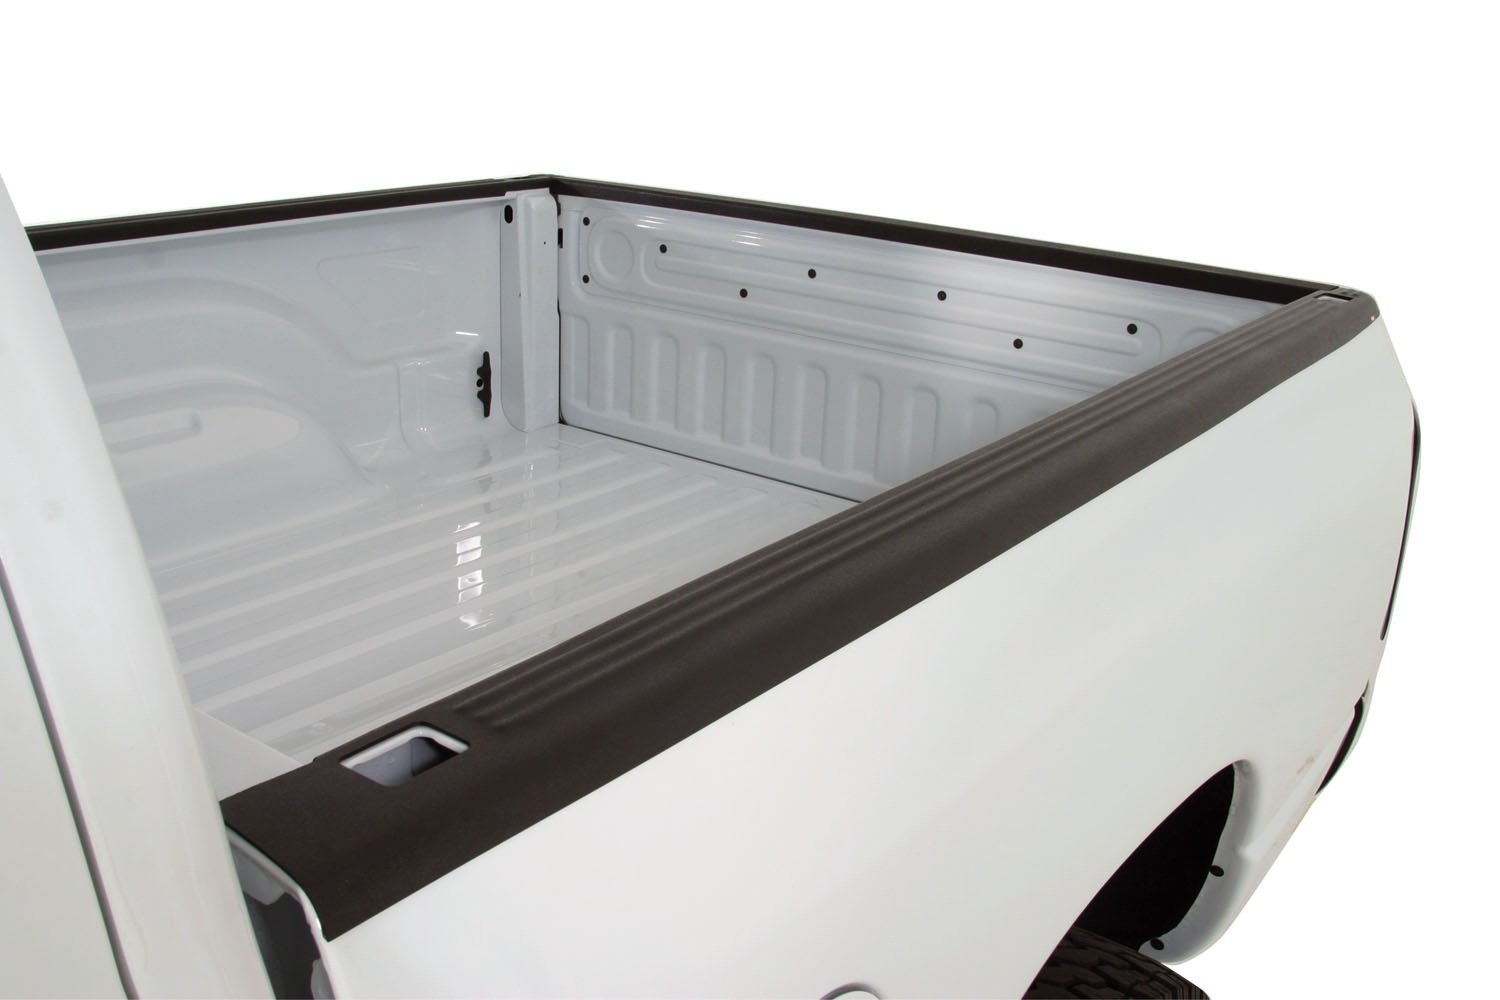 Wade 72-01681 Truck Bed Tailgate Cap Black Smooth Finish for 1987-1996 Ford F-150 F-250 F-350 (Except Stepside bed)